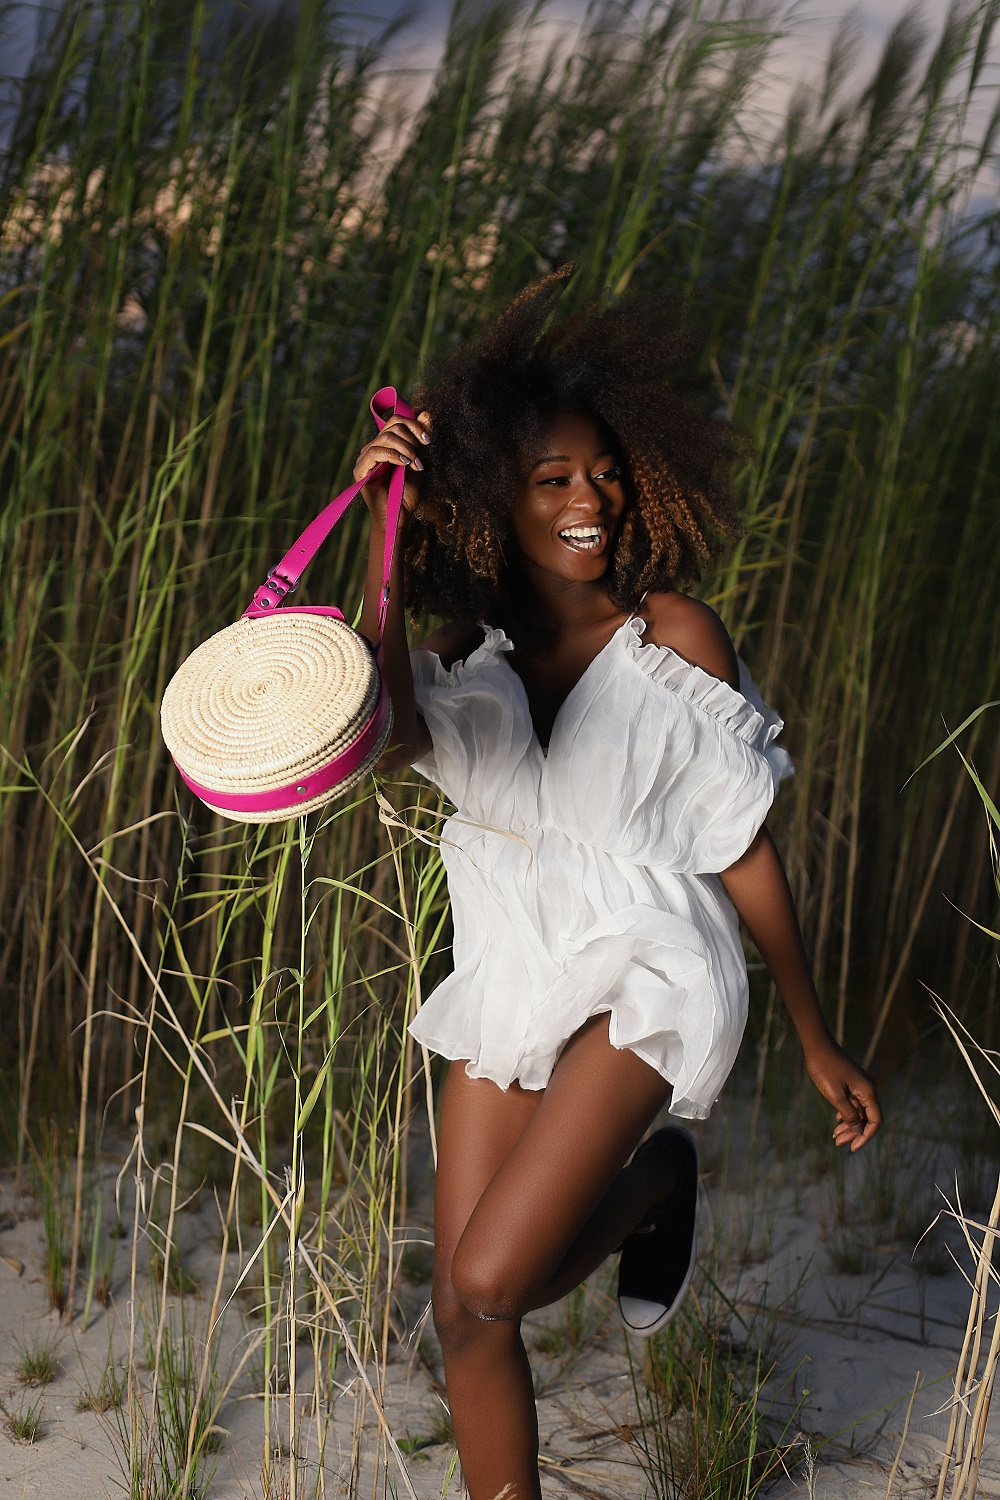 Mix Functionality and Summer Vibes, You Get This ÉKÉTÉ Bag Collection